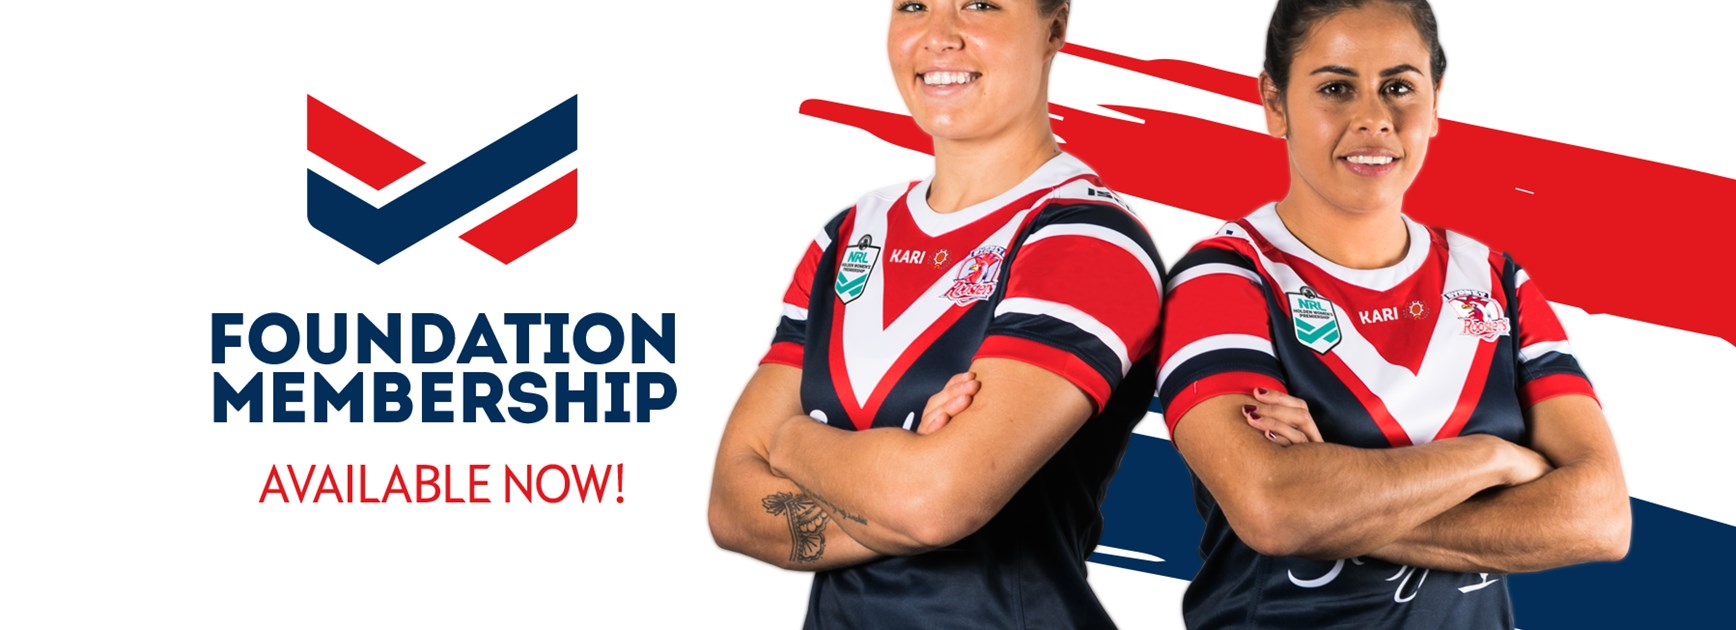 NRLW Membership On Sale Now